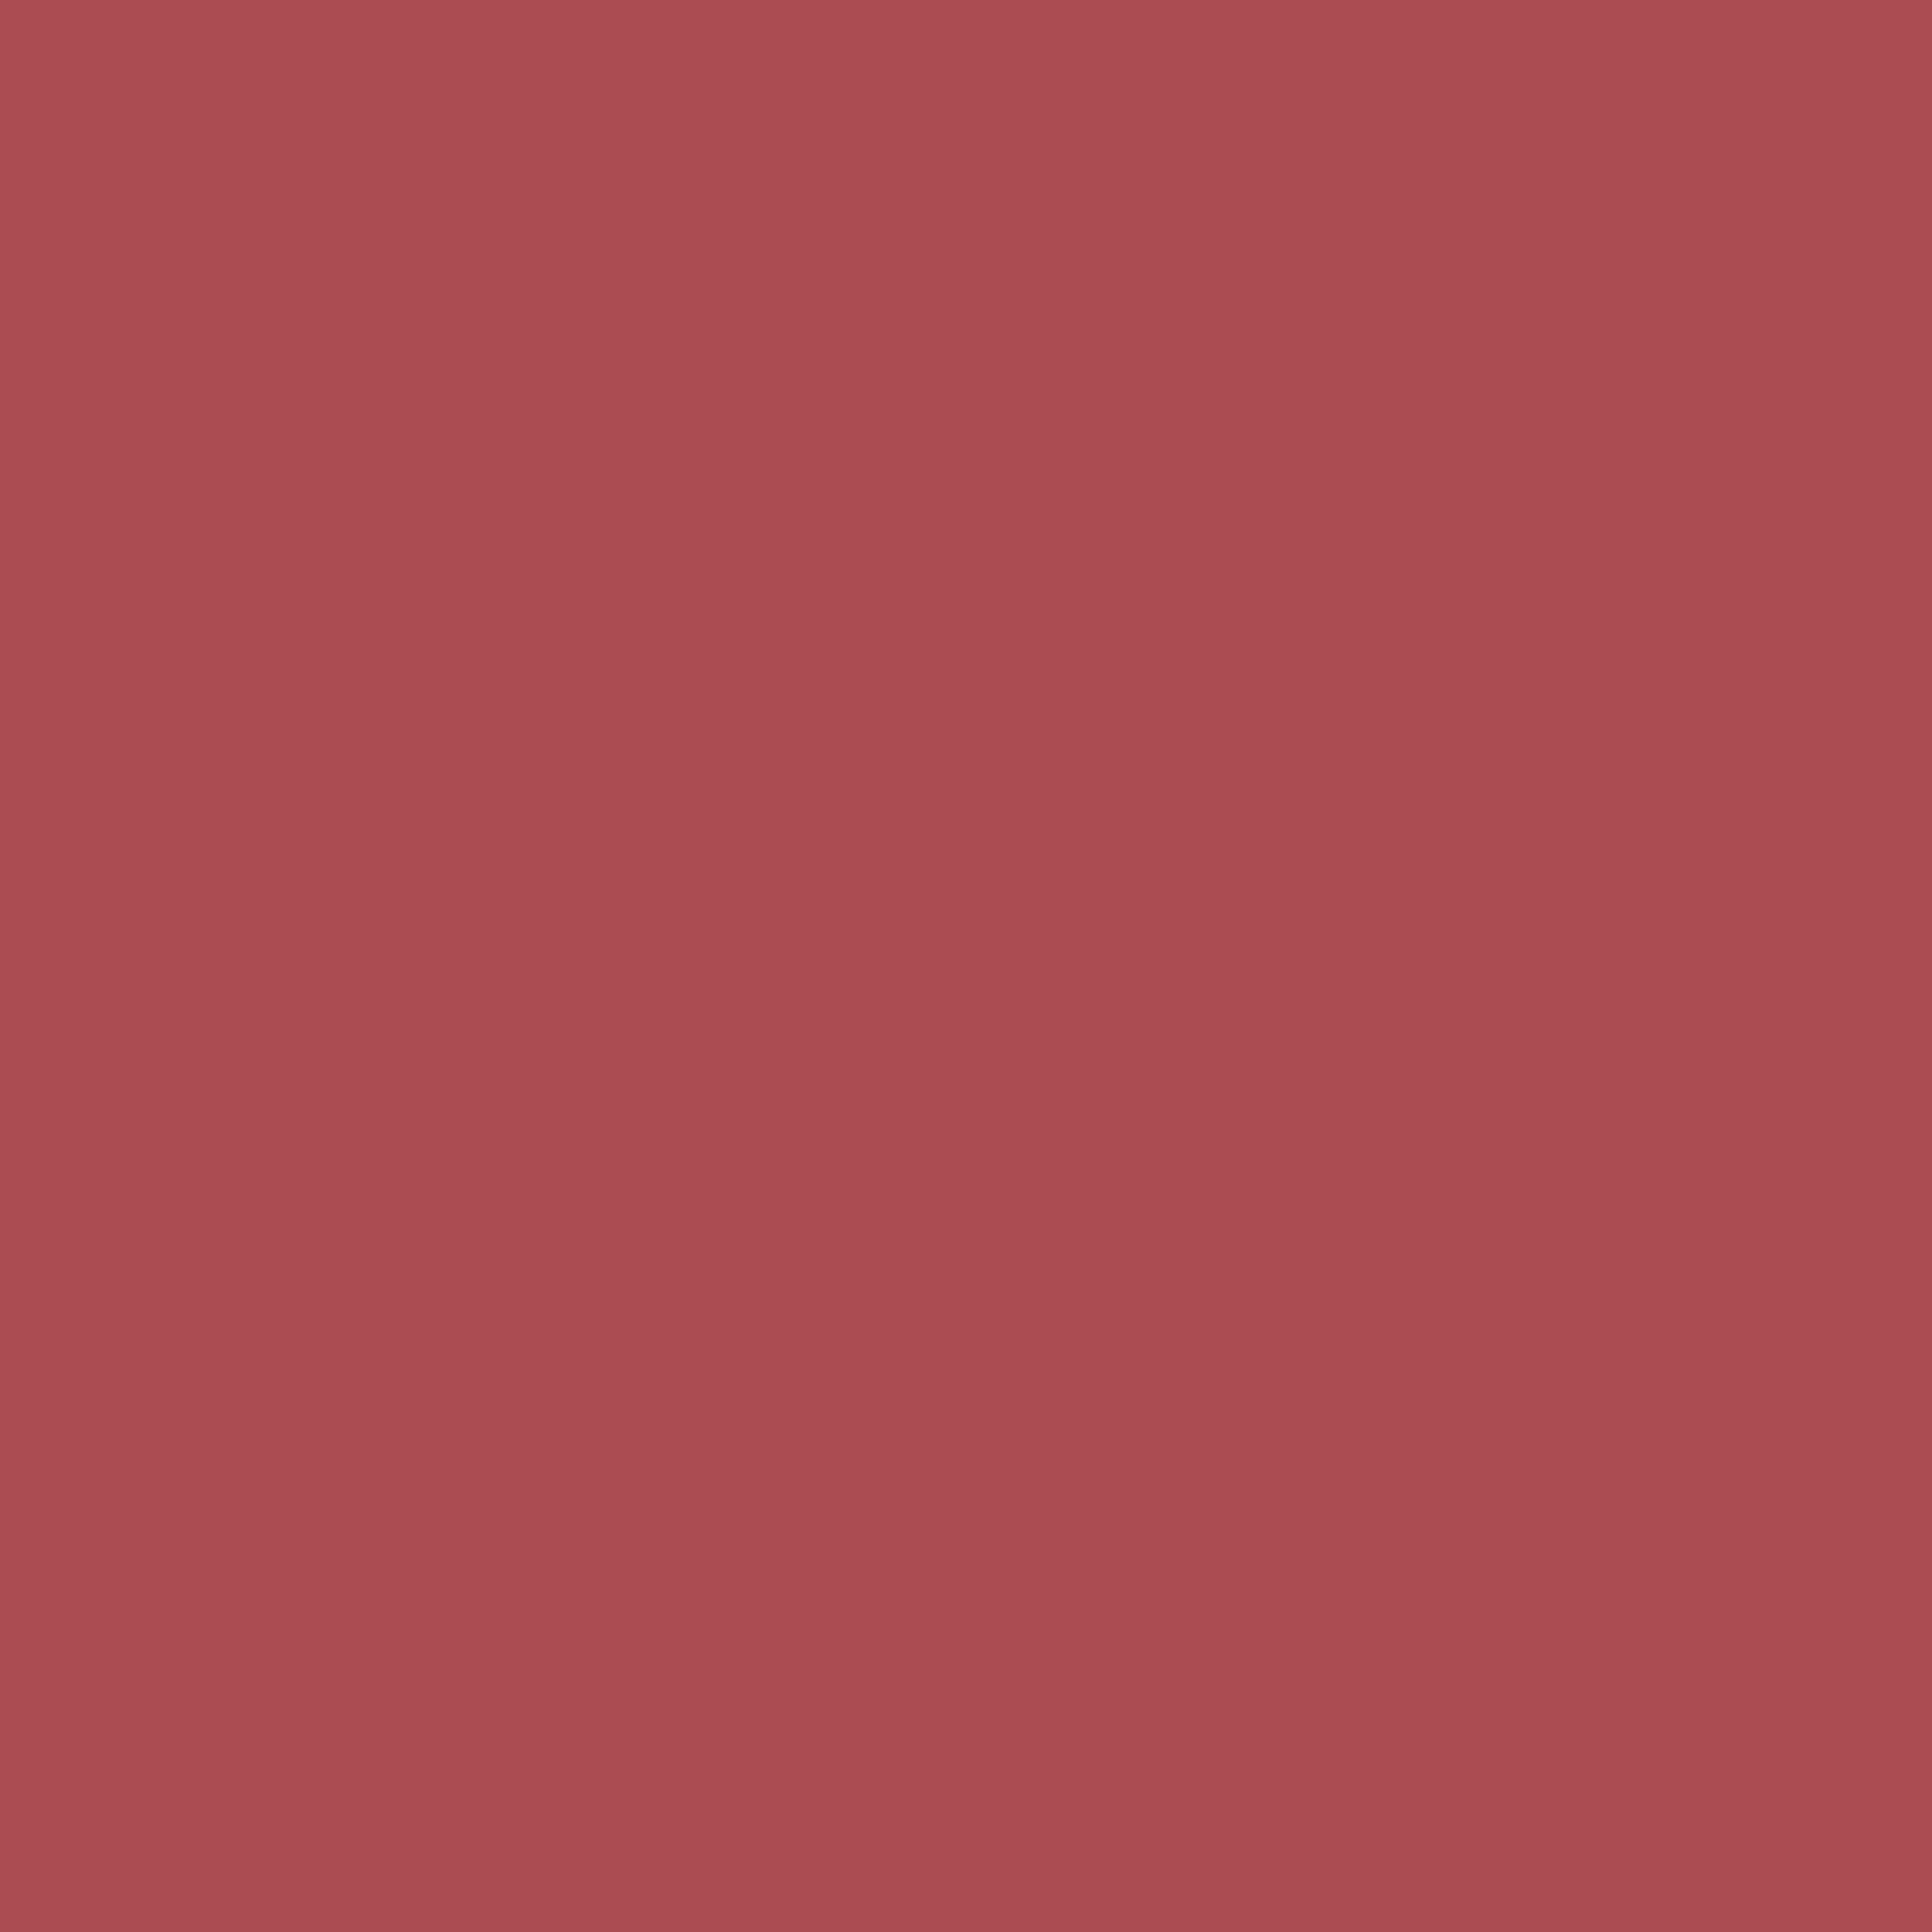 3600x3600 Rose Vale Solid Color Background